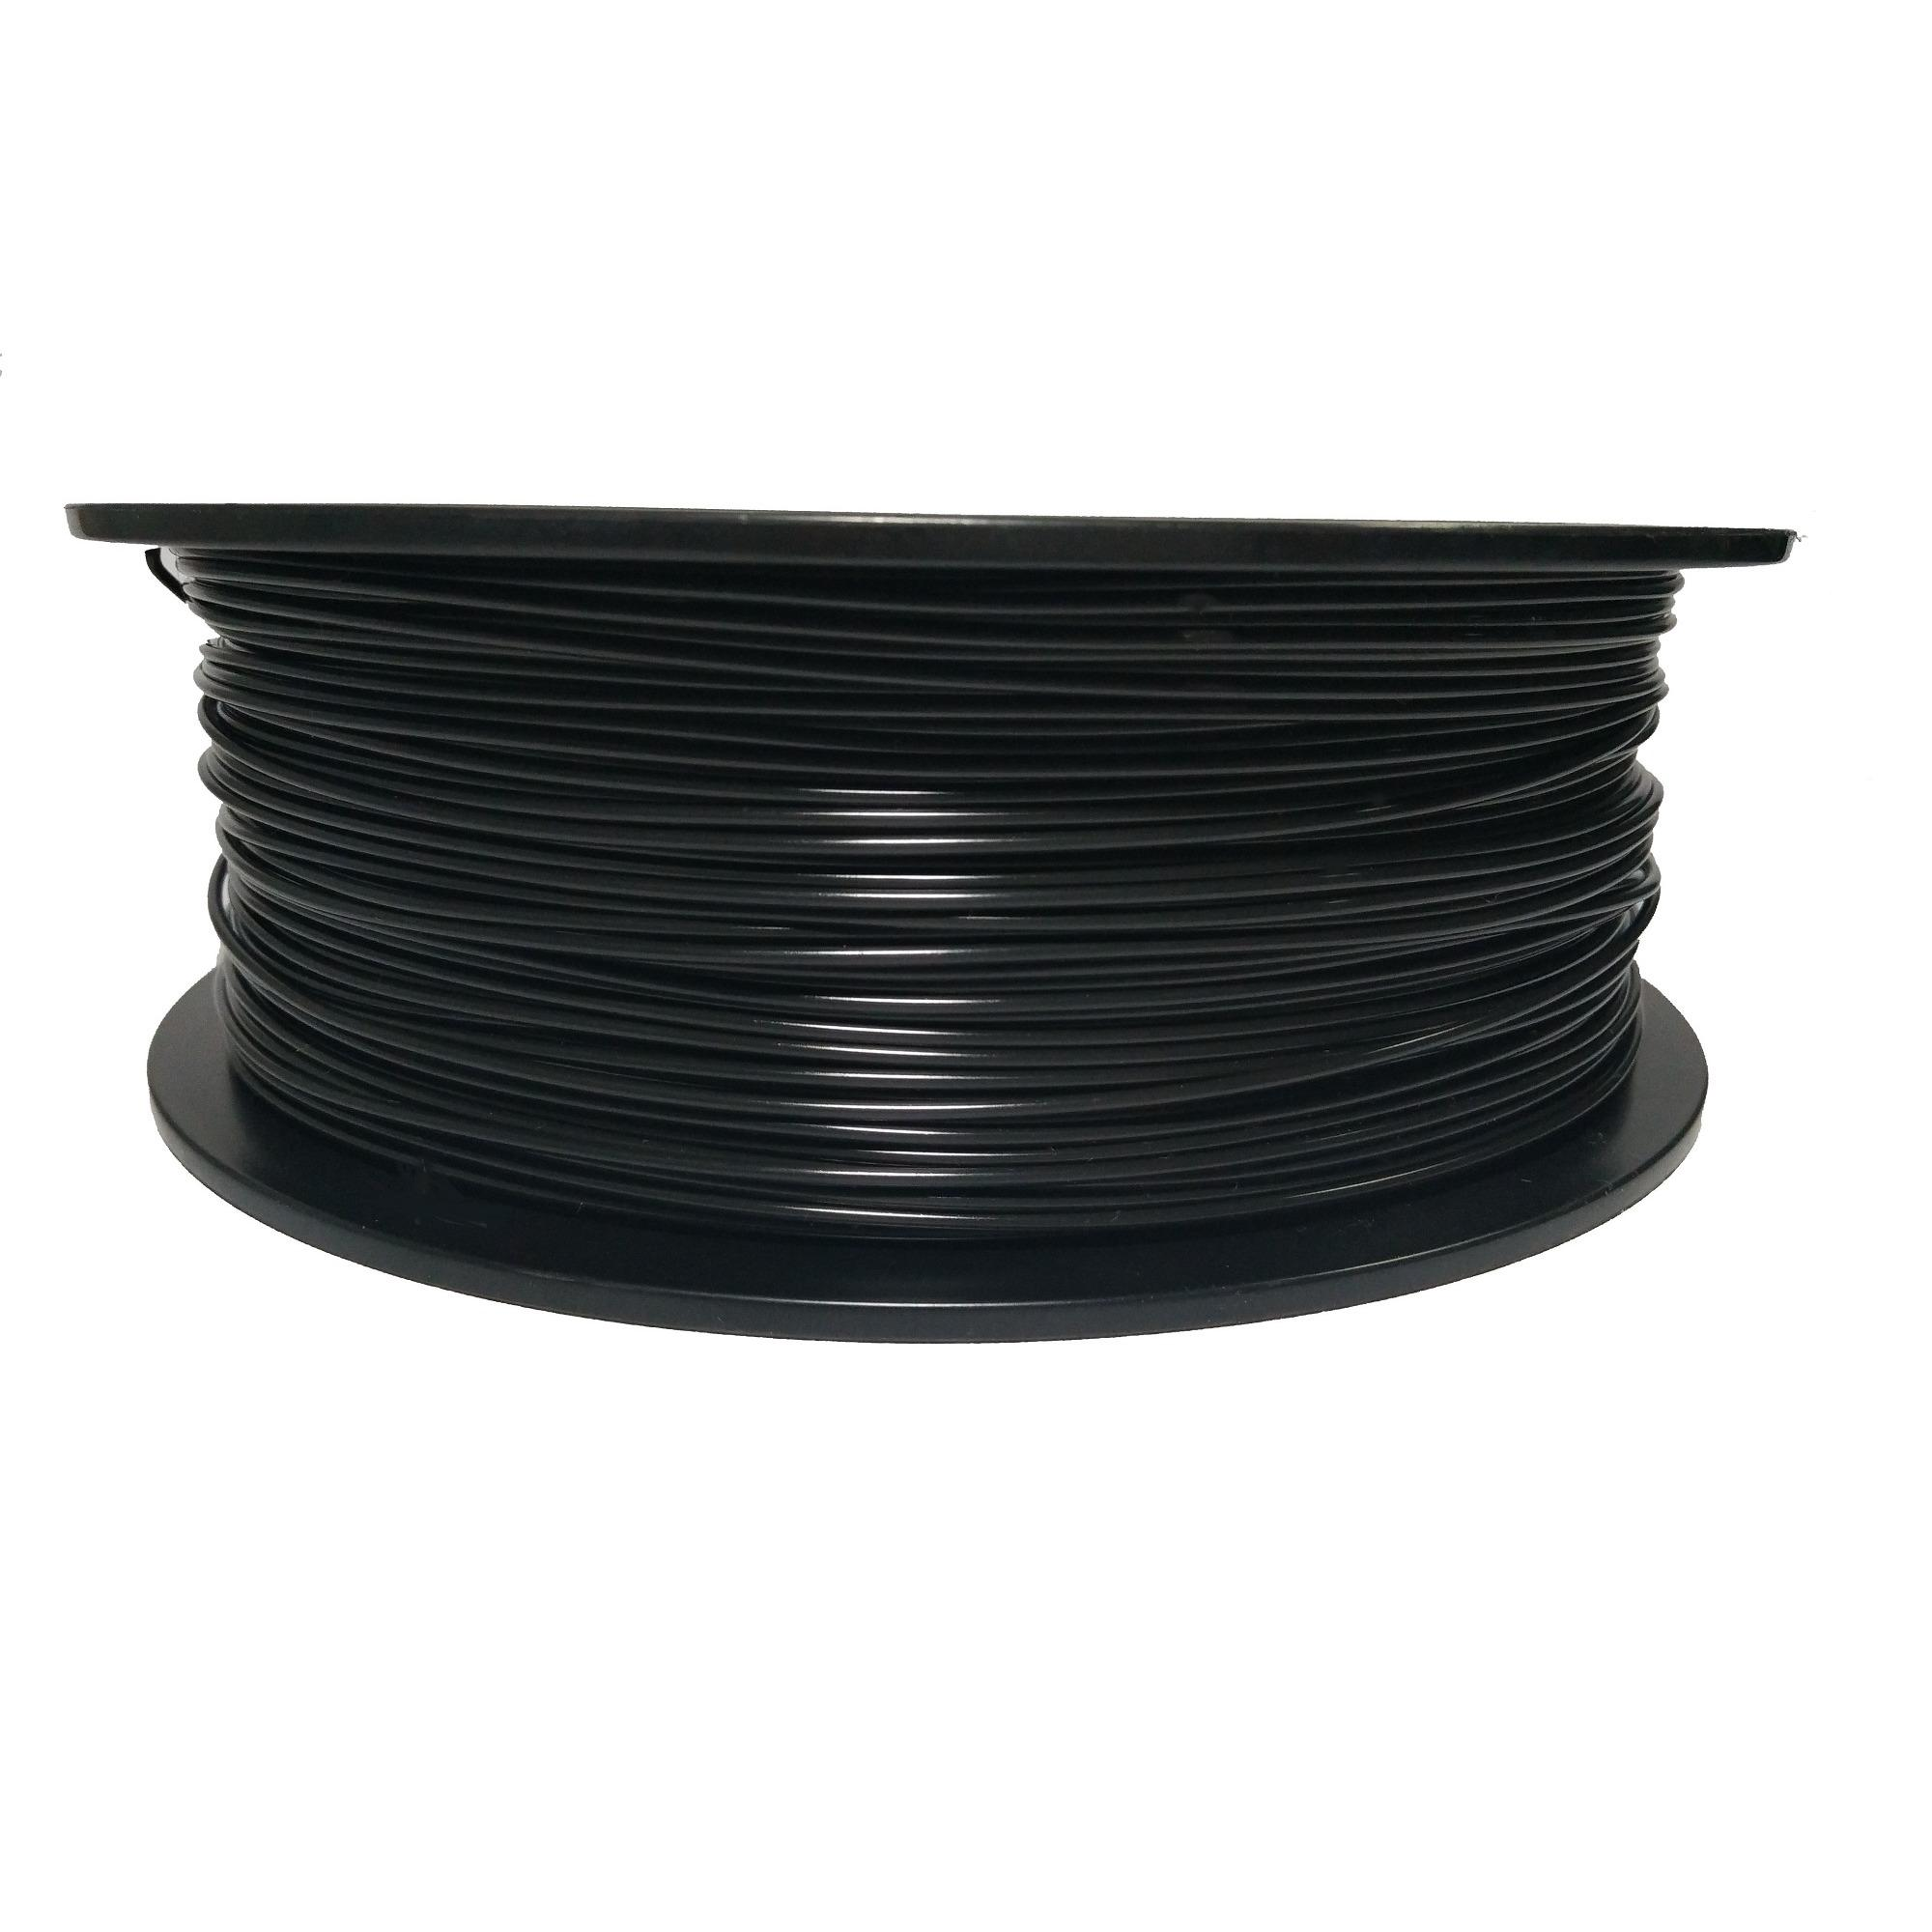 Deals For Black Petg Filament For 3D Printer 1 75Mm 1Kg